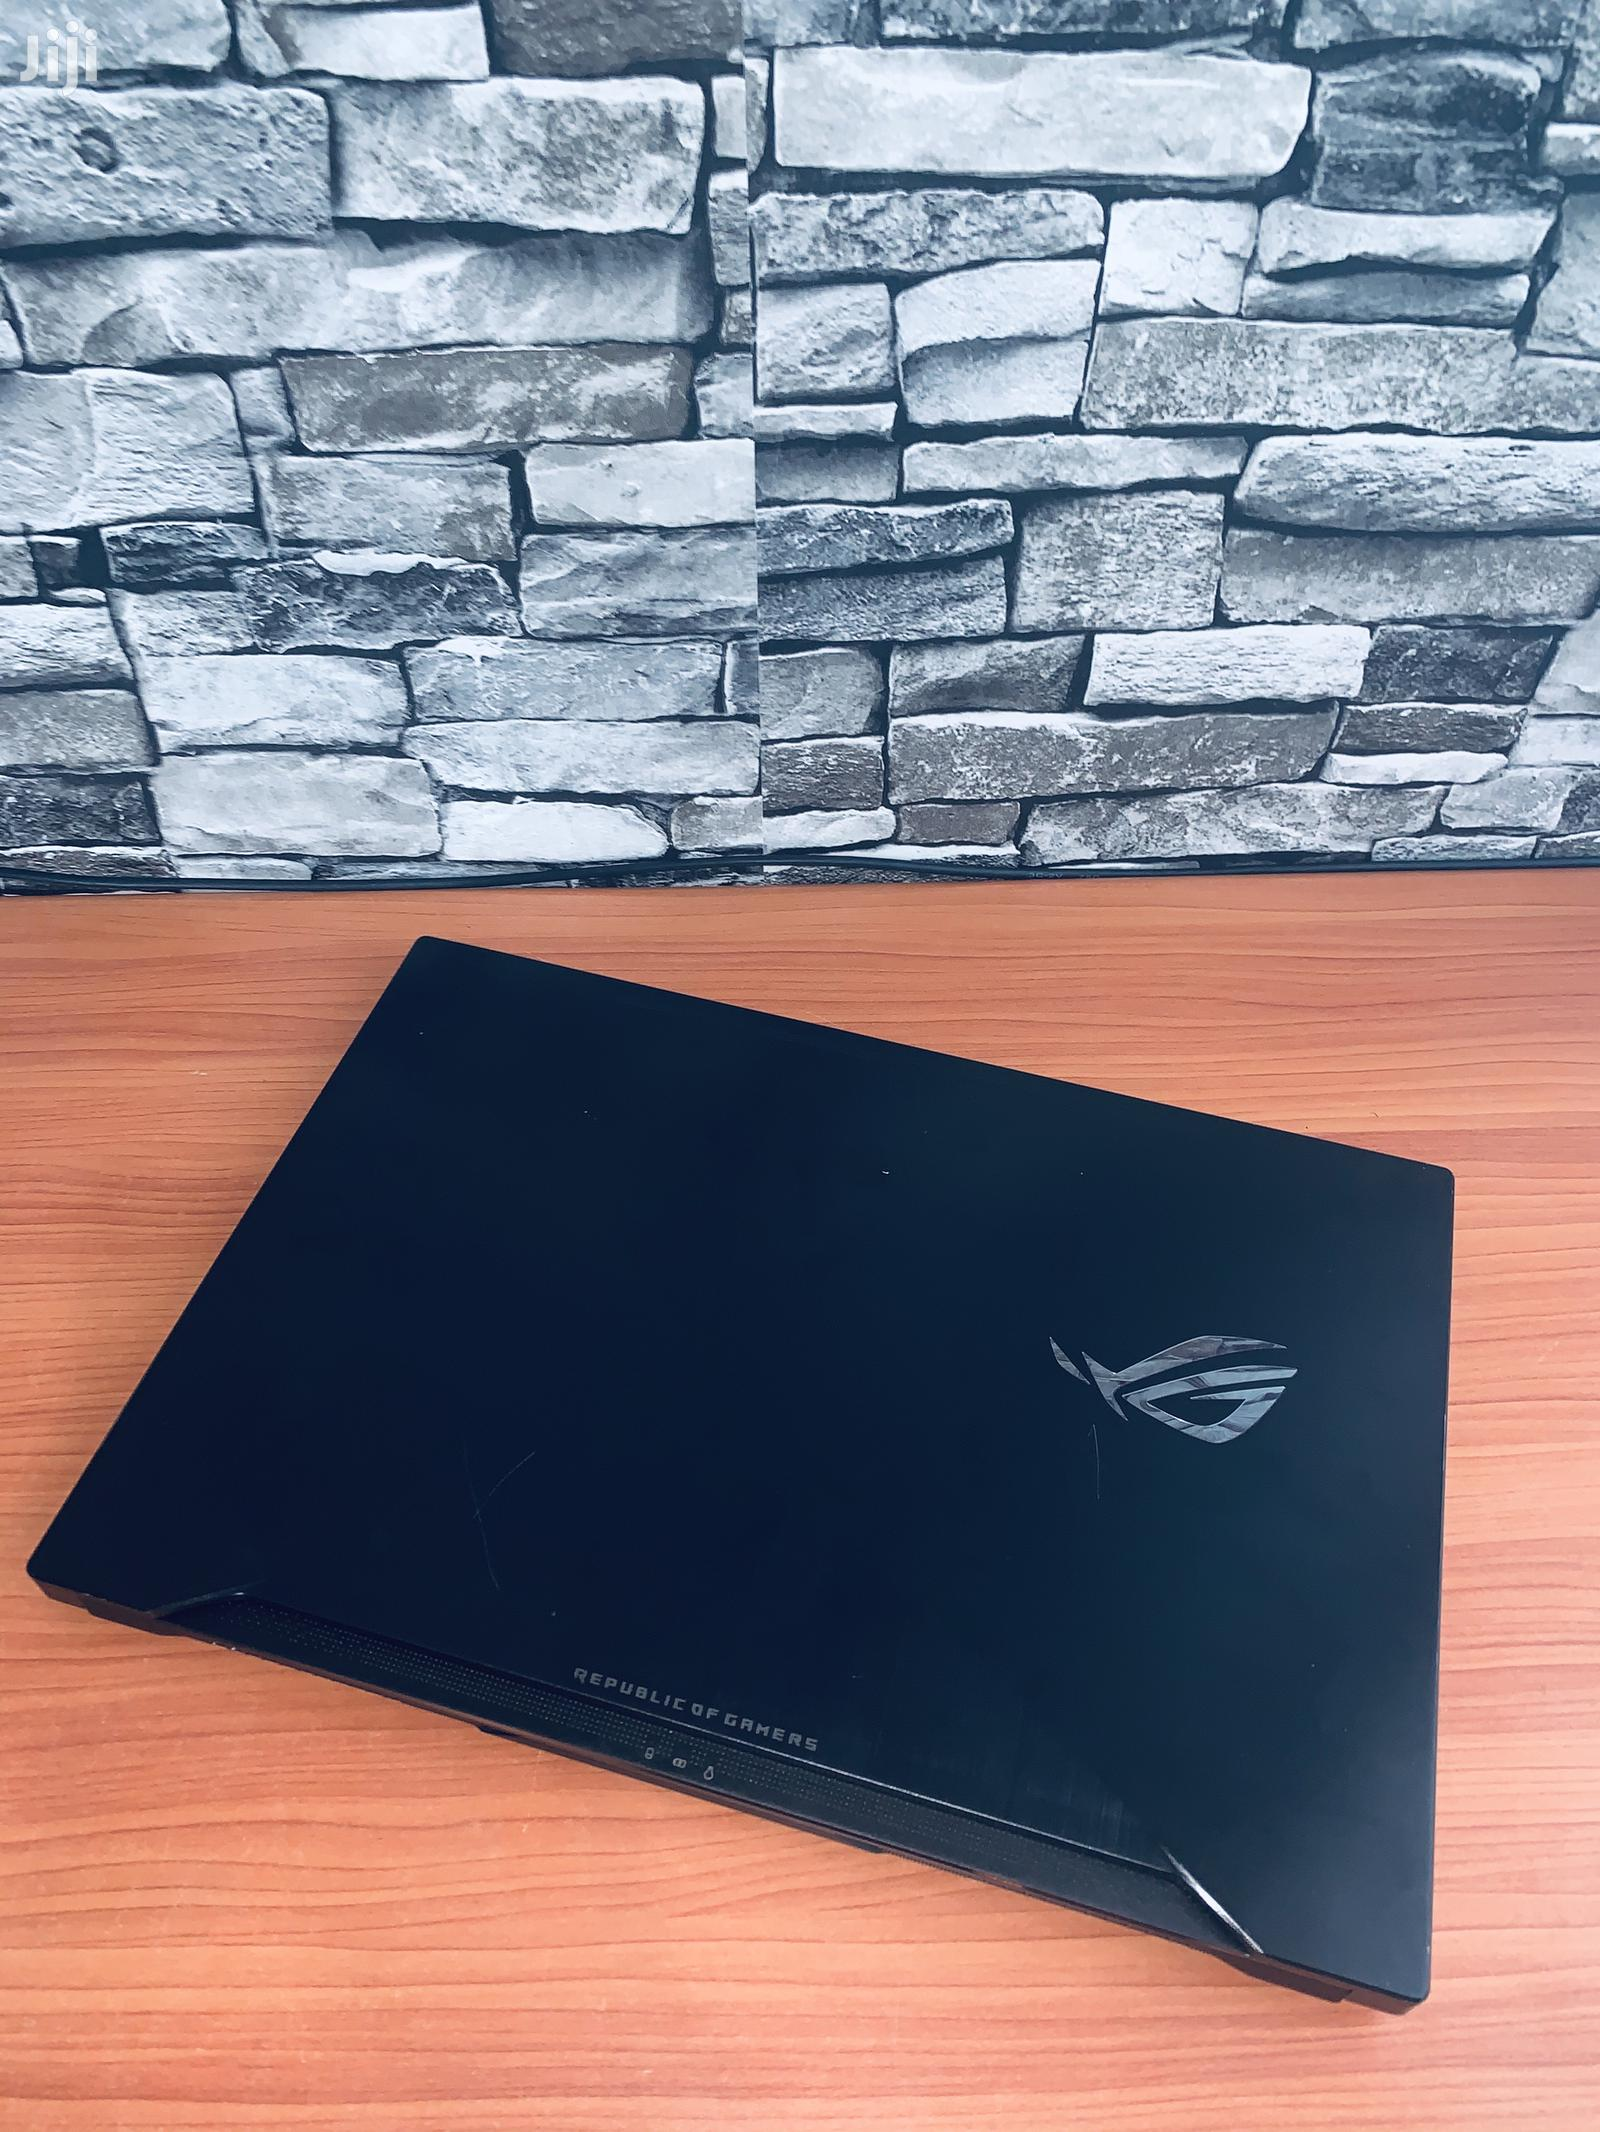 Laptop Asus ROG Strix Hero Edition 16GB Intel Core I7 SSHD (Hybrid) 1T | Laptops & Computers for sale in Osu, Greater Accra, Ghana